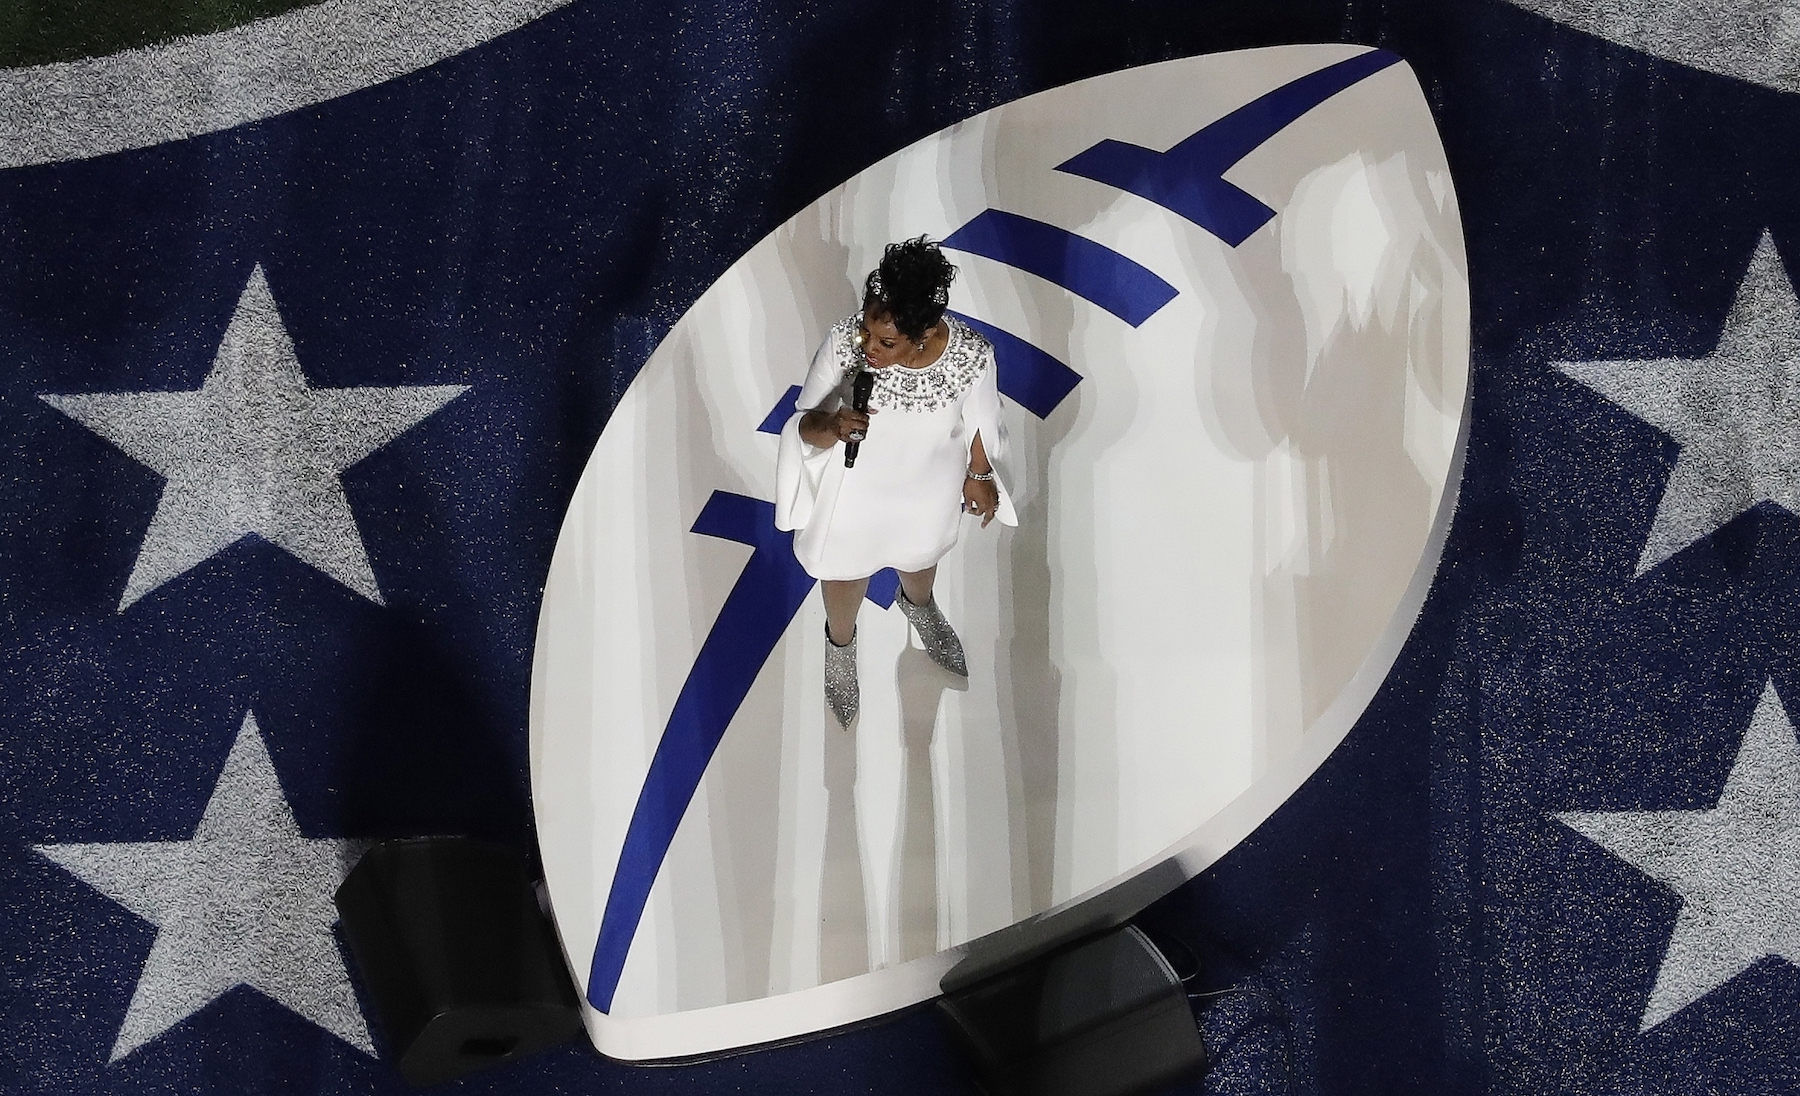 """<div class=""""meta image-caption""""><div class=""""origin-logo origin-image ap""""><span>AP</span></div><span class=""""caption-text"""">Gladys Knight sings the national anthem before the NFL Super Bowl 53 football game between the Los Angeles Rams and the New England Patriots Sunday, Feb. 3, 2019, in Atlanta. (AP Photo/Morry Gash)</span></div>"""